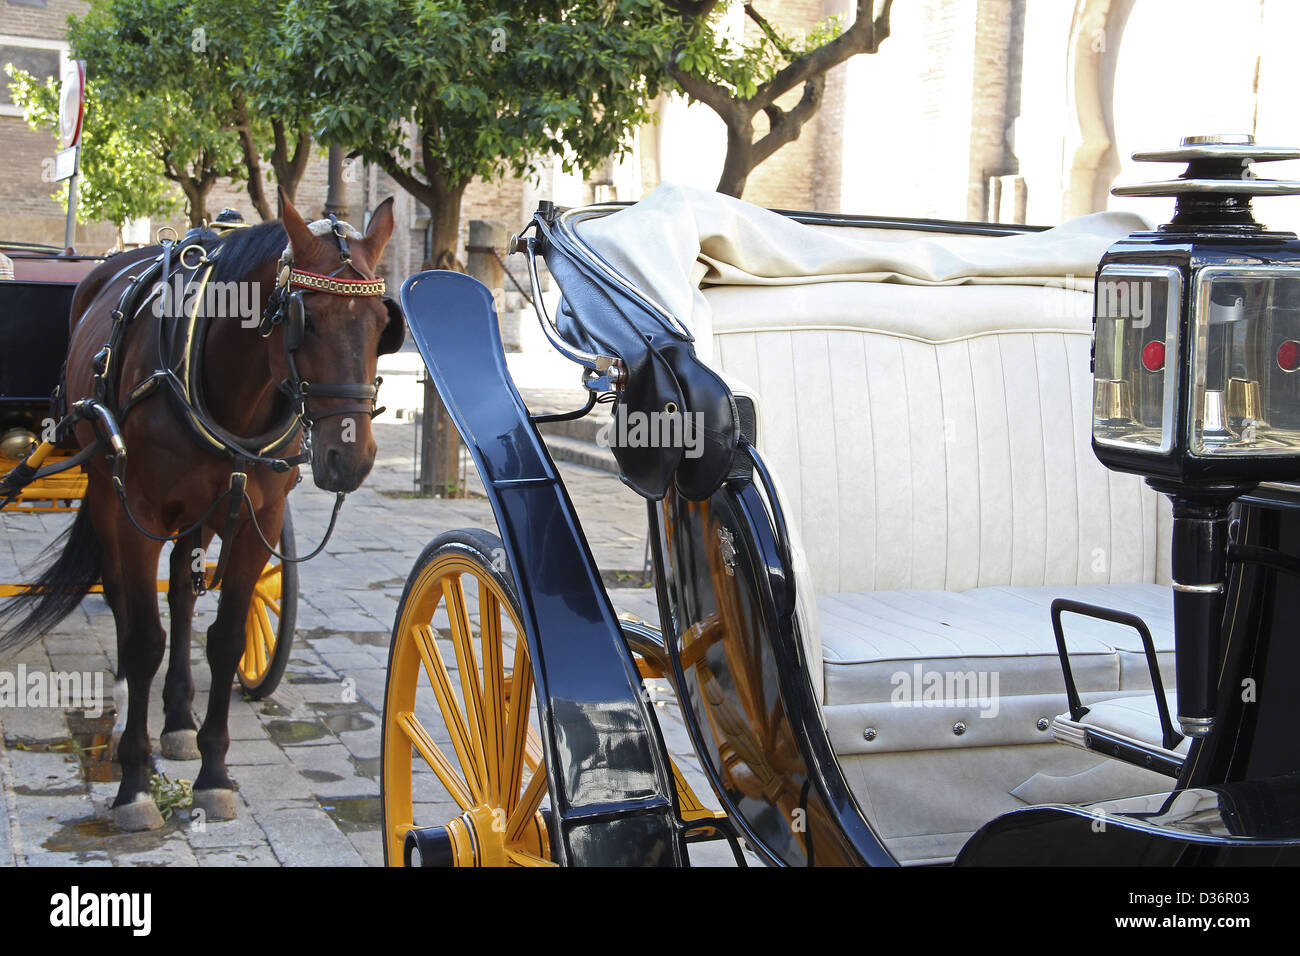 Horse in Seville - Stock Image